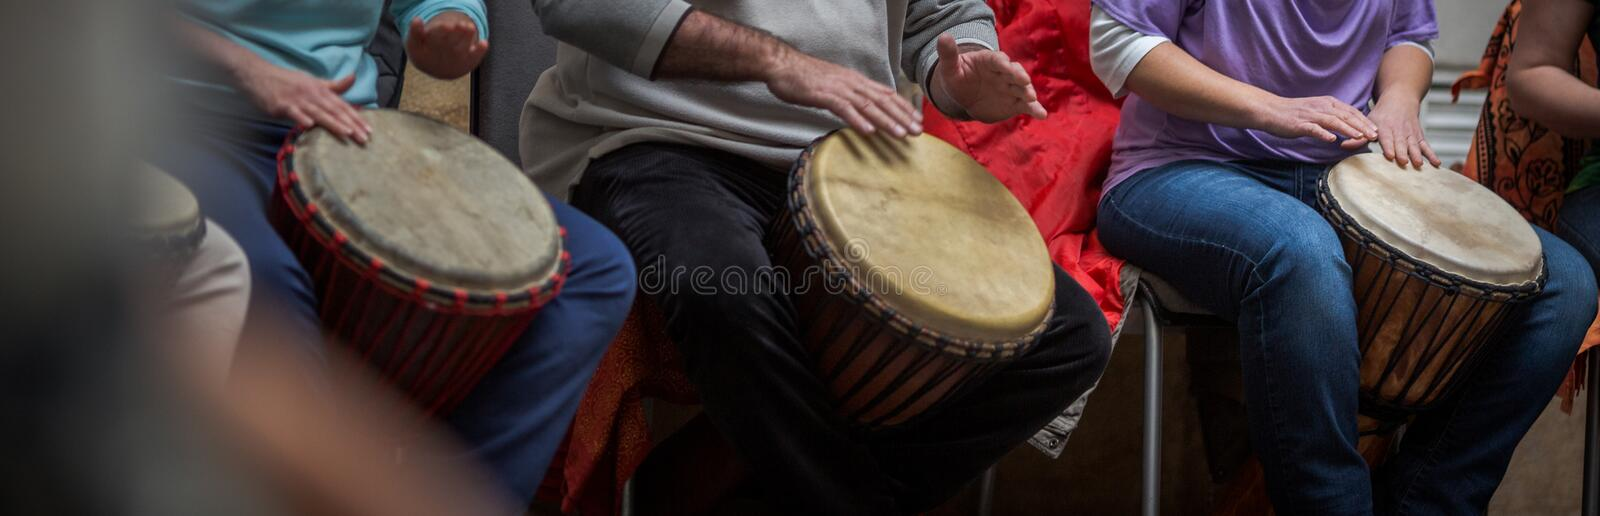 Group of people playing on drums stock image